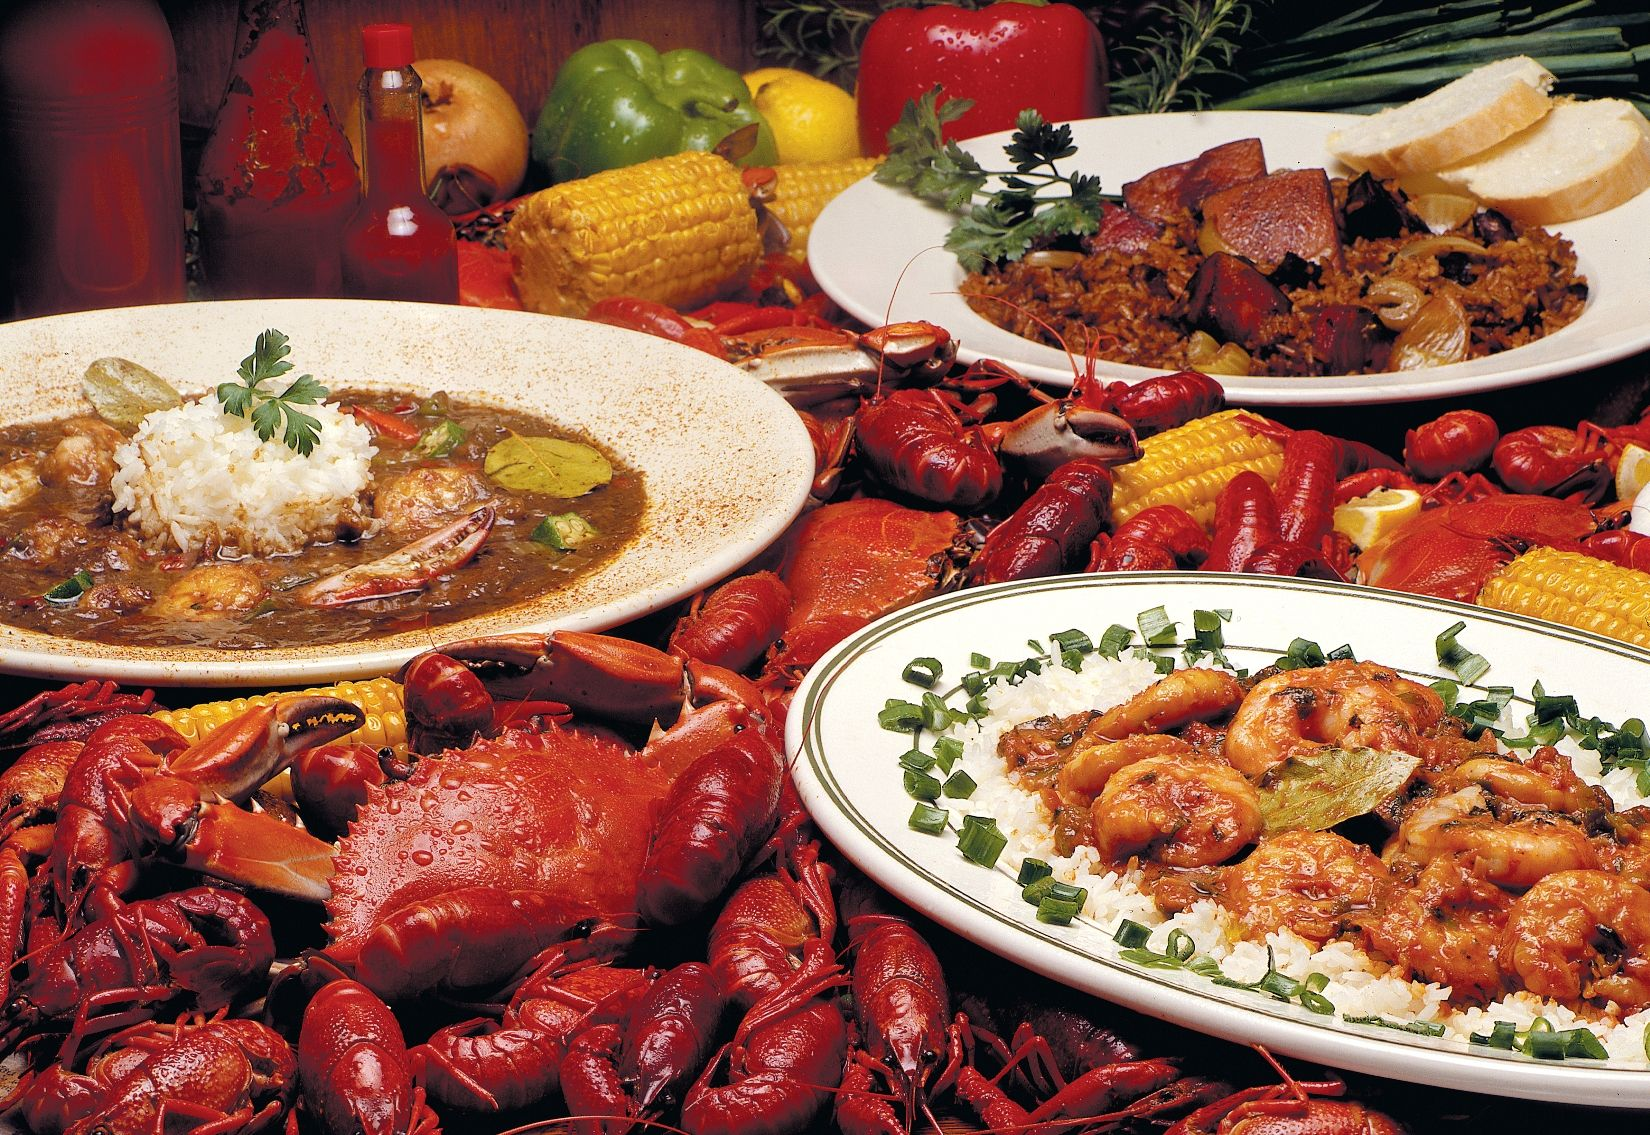 history of cajun cuisine essay It is also home to the historic port city new orleans, which is famous for its unique cuisine, jazz and spectacular mardi gras festival  some natives of lousiana consider themselves cajun or.